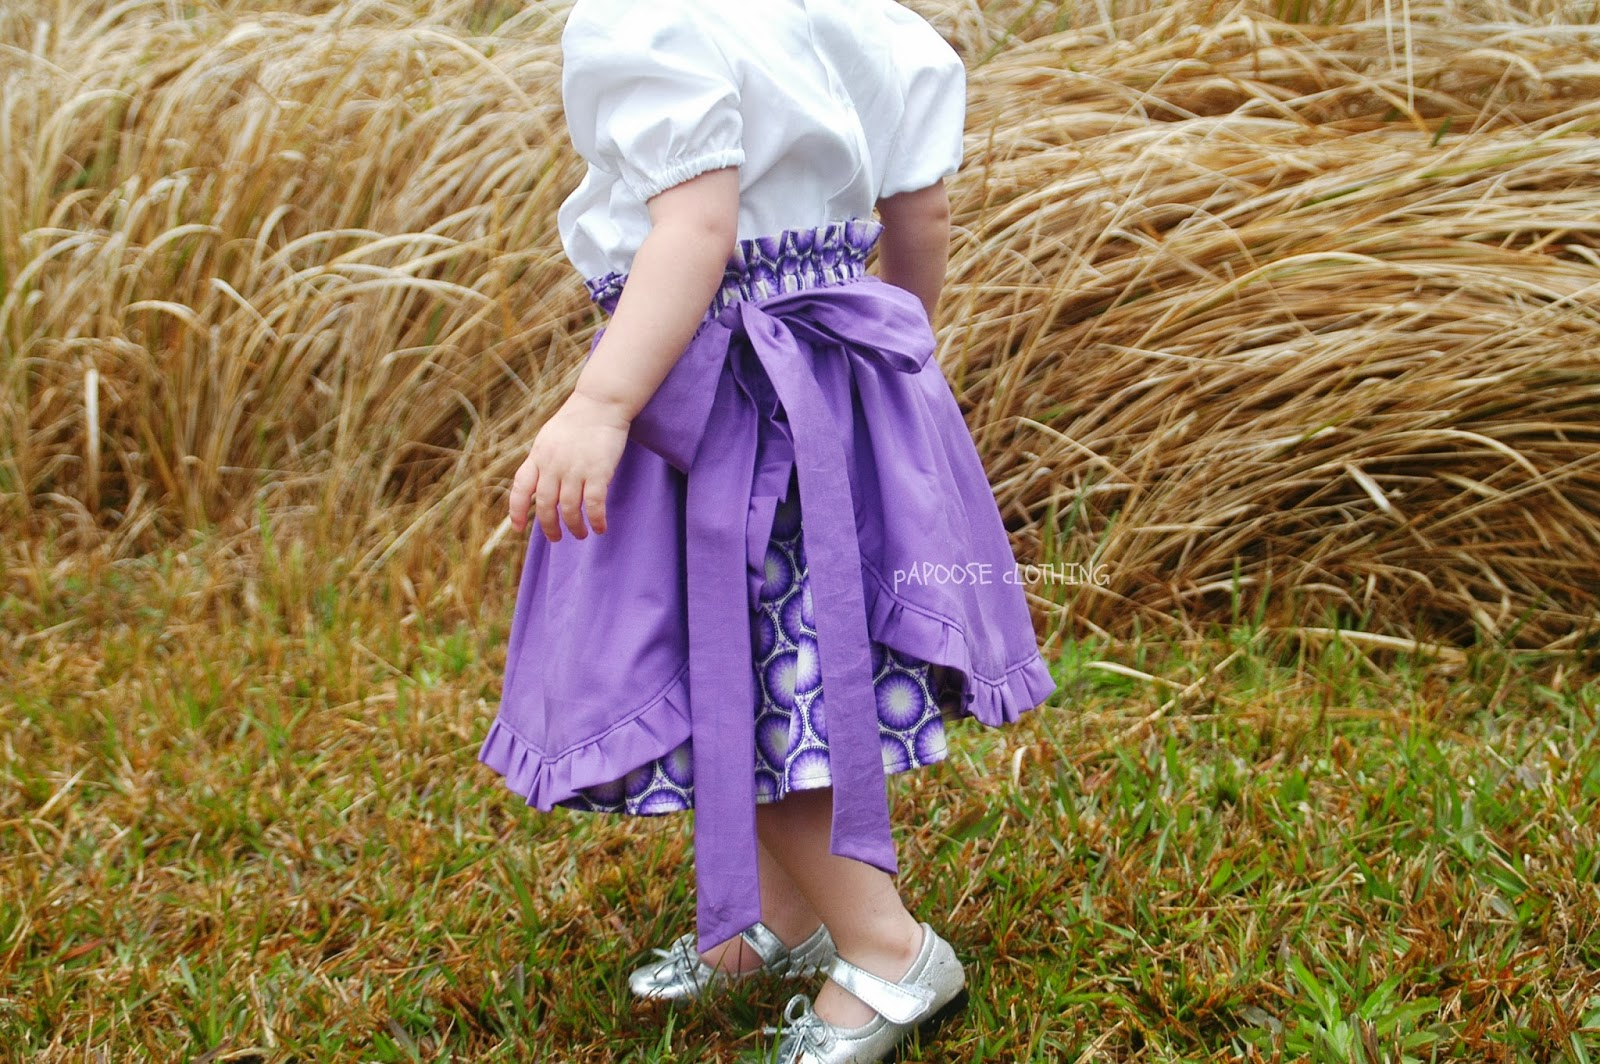 https://www.etsy.com/listing/124607629/sale-ruffle-top-extra-full-purple-skirt?ref=shop_home_active_3